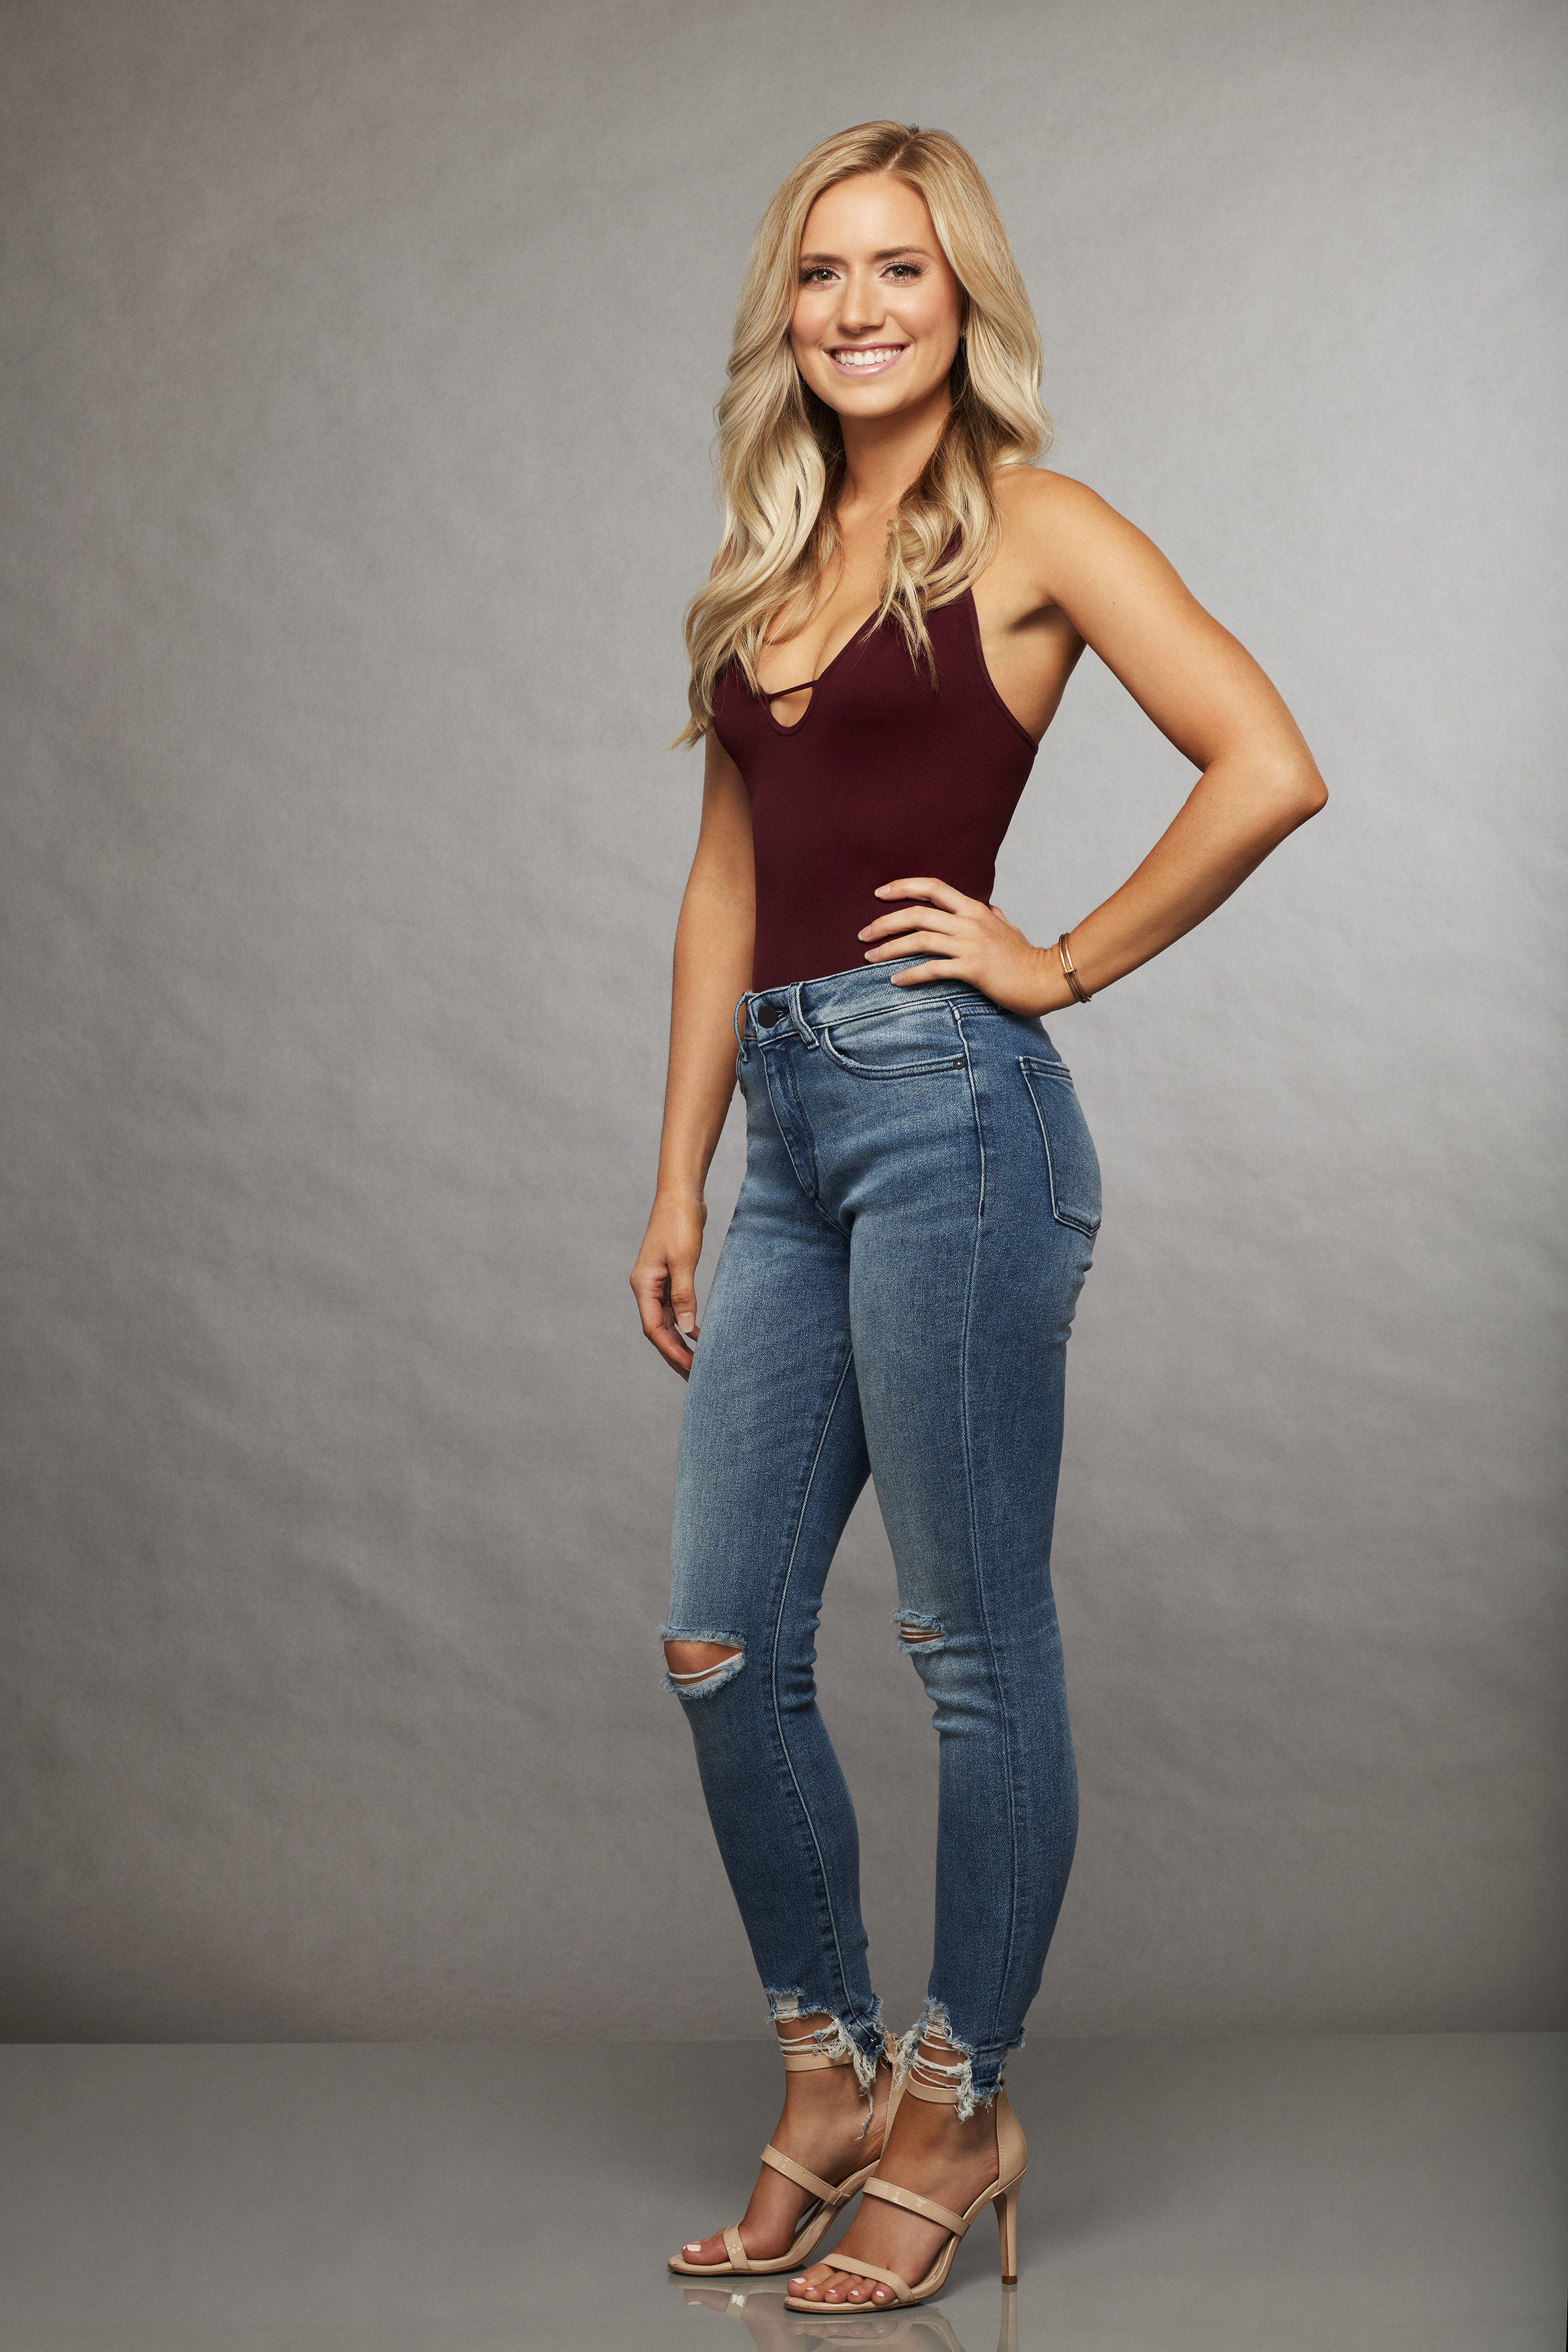 The Bachelor 2018 Premieres Jan 1: Meet the Bachelorettes ...